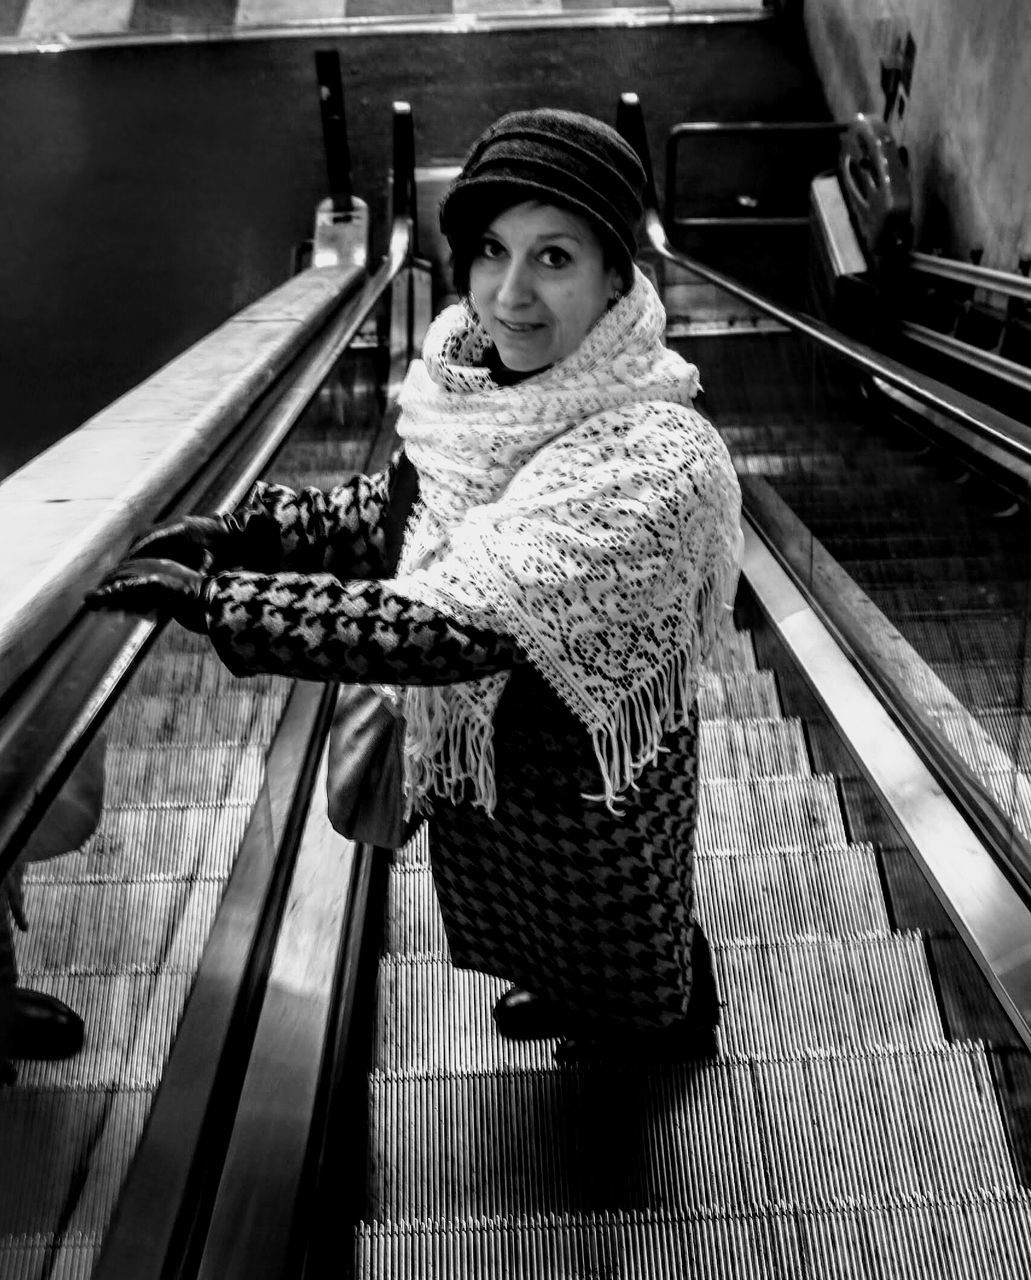 High Angle Portrait Of Woman Standing On Escalator At Firenze Santa Maria Novella Railway Station